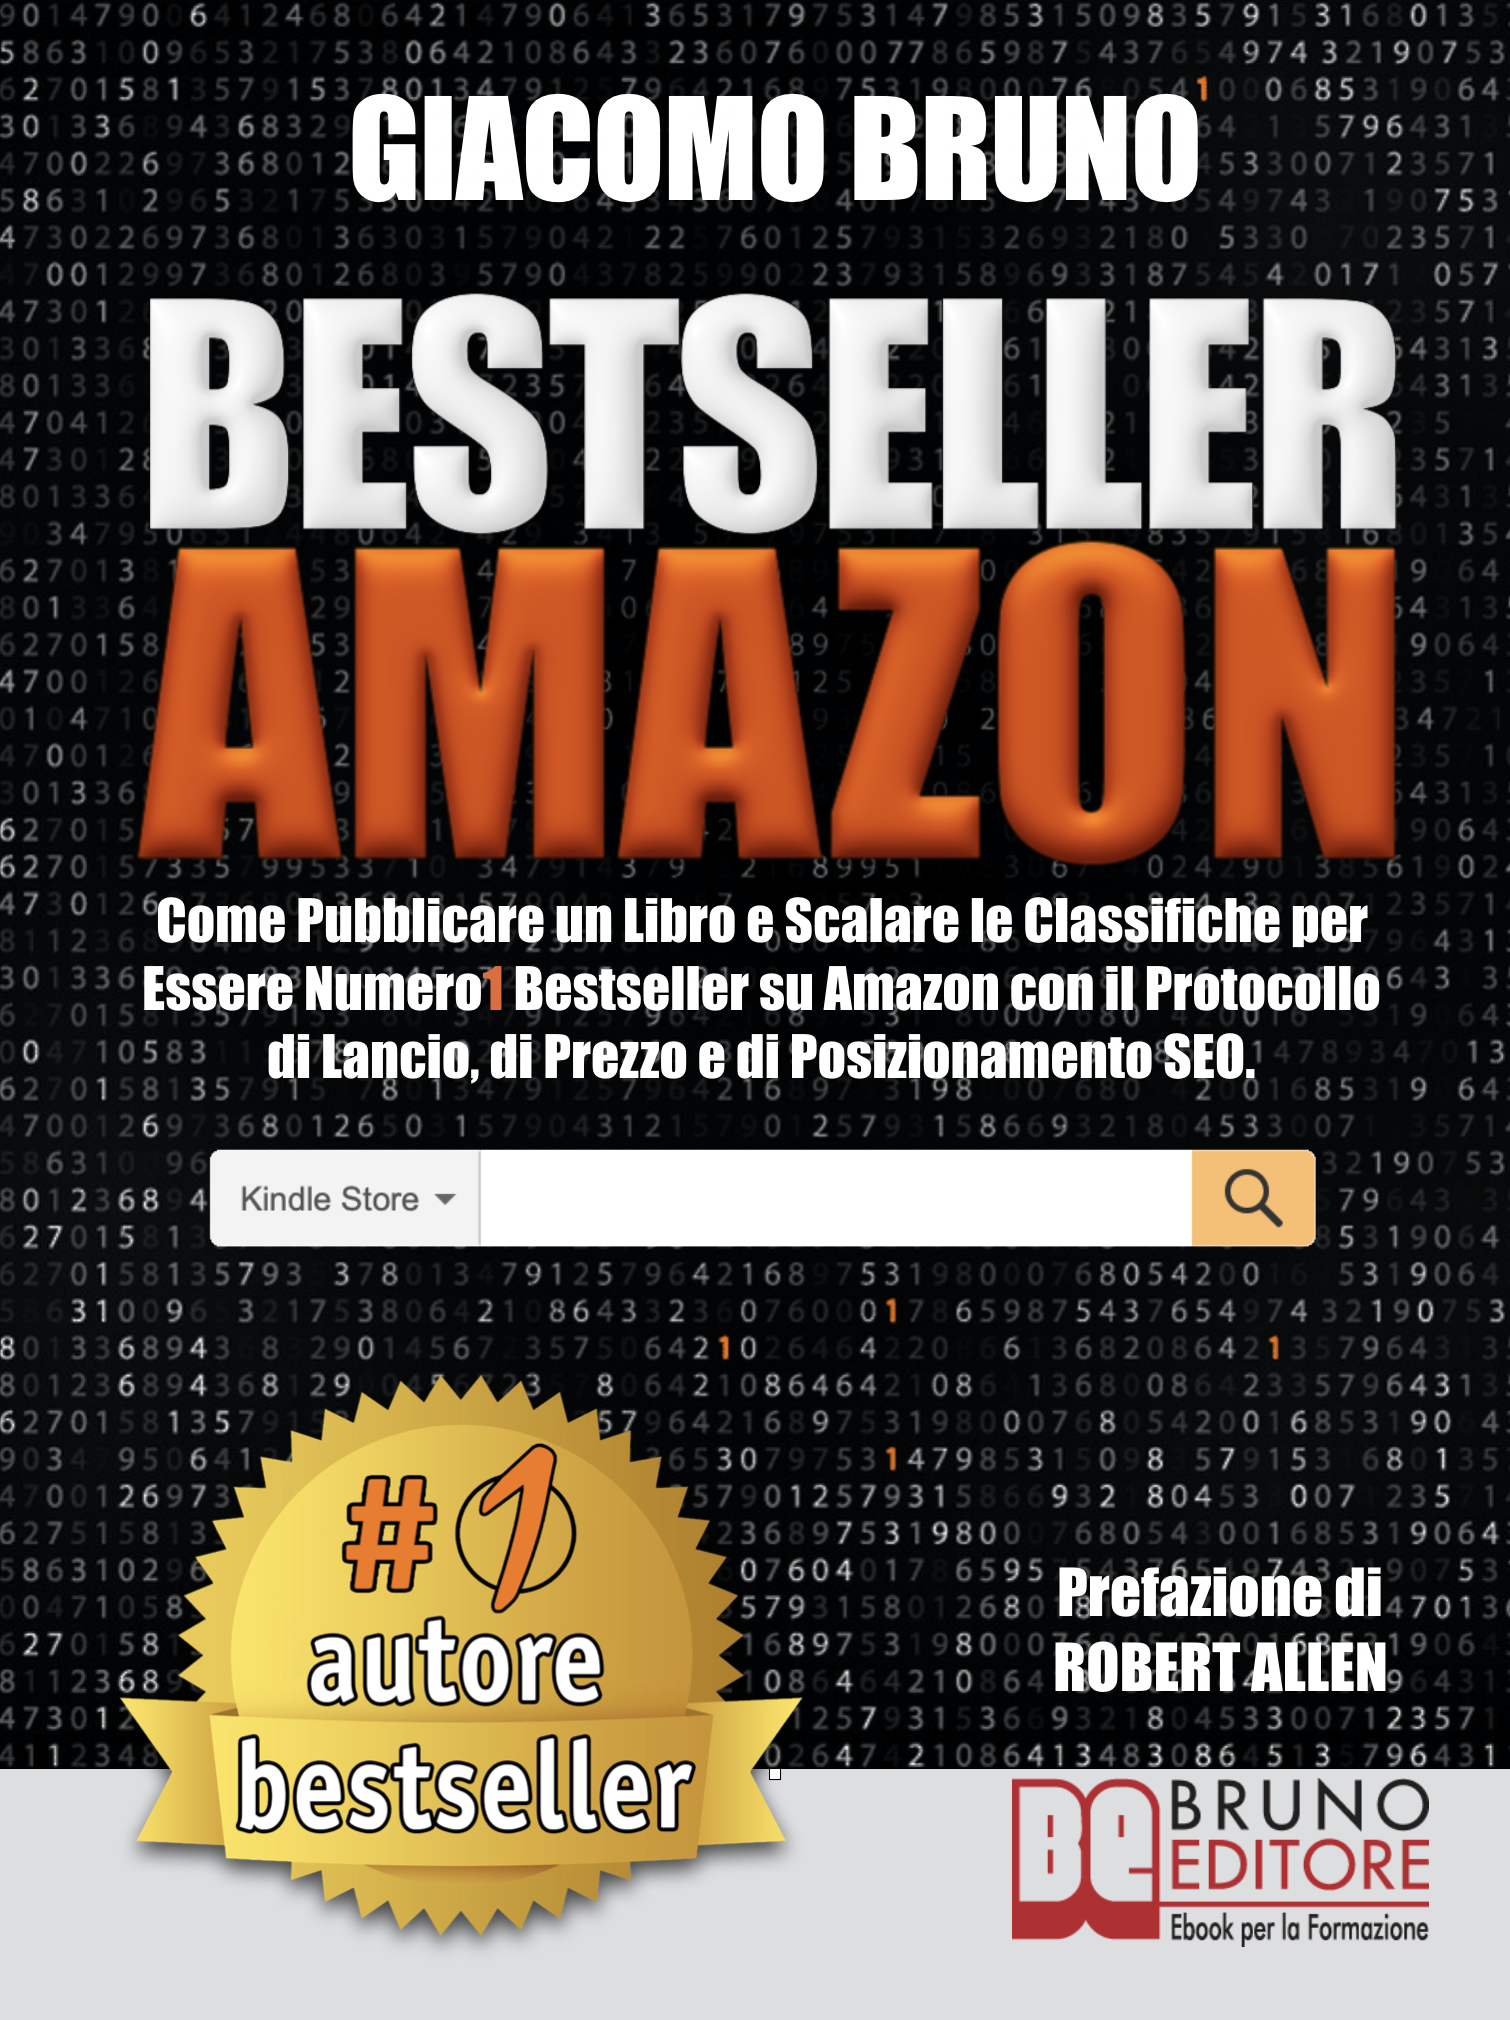 Bestseller Amazon